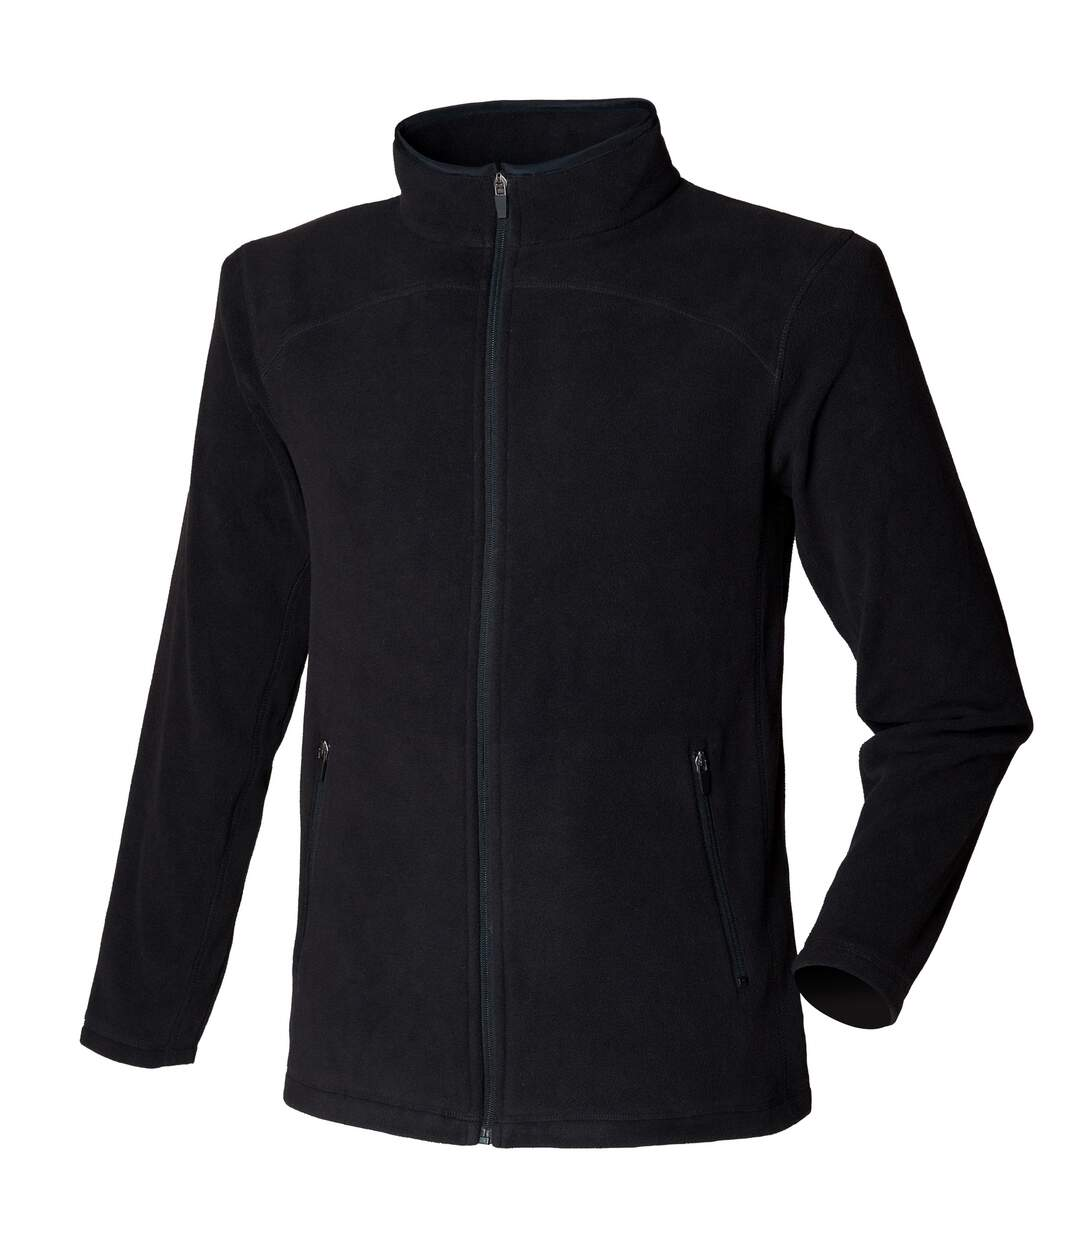 Skinni Fit Mens Microfleece Anti Pill Lightweight Jacket (Black) - UTRW1397